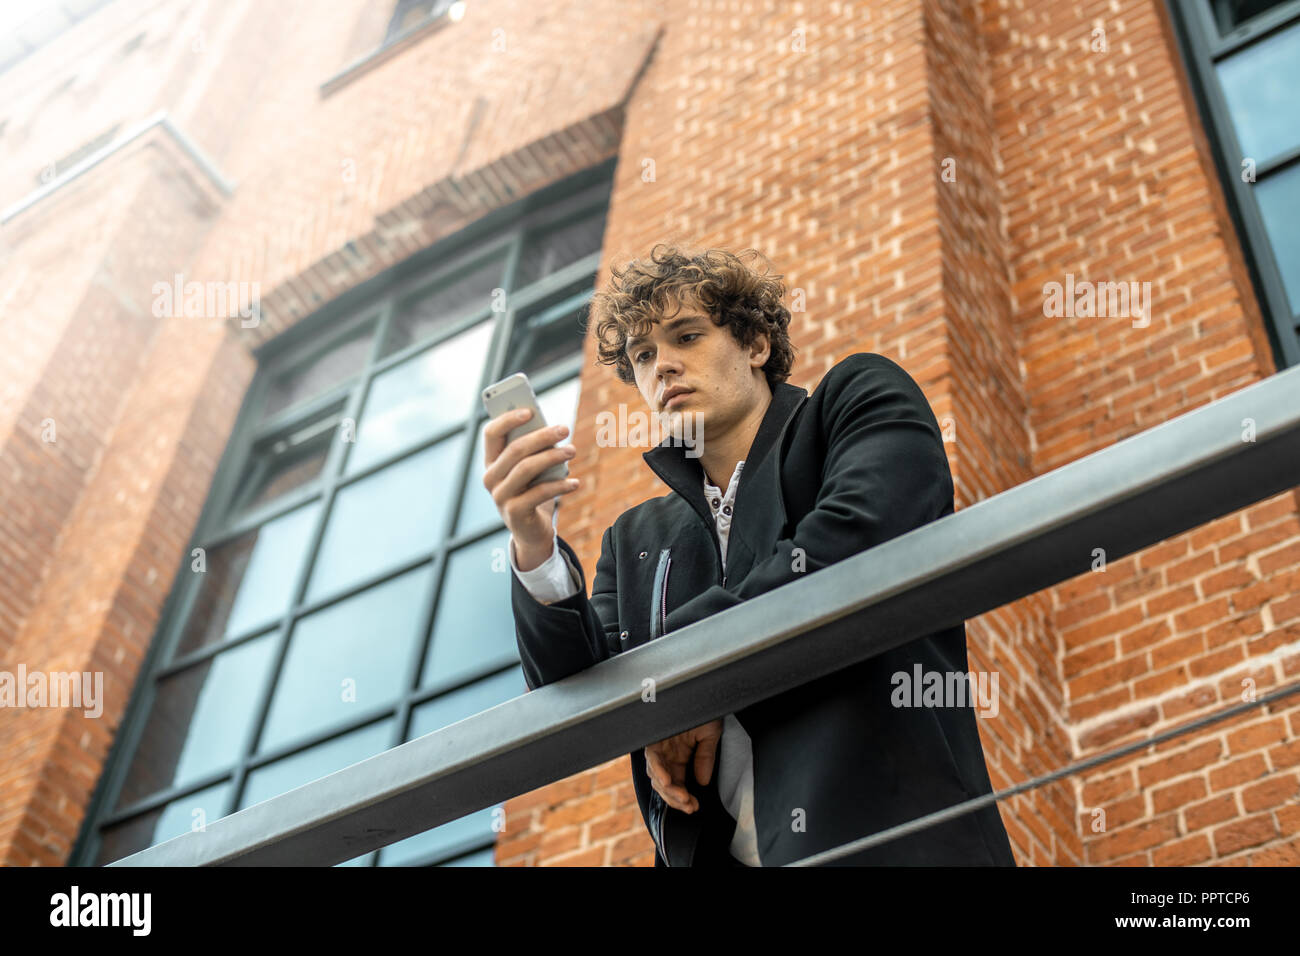 Attractive pensive man standing on staircase and looking at mobile phone screen. - Stock Image